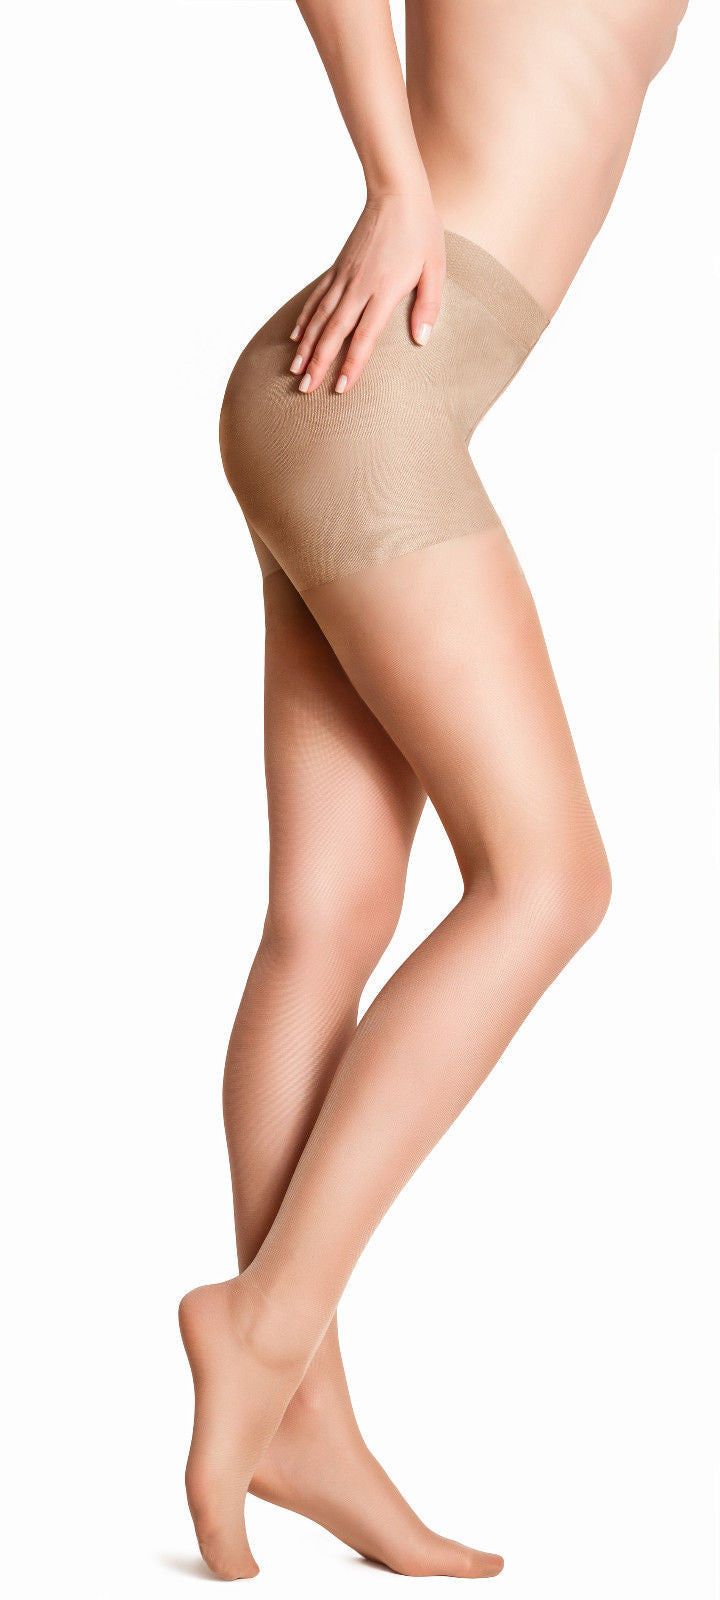 MC By Marie Claire Bodytoner Satin Sheen Tights 15 Denier Control Top Tights